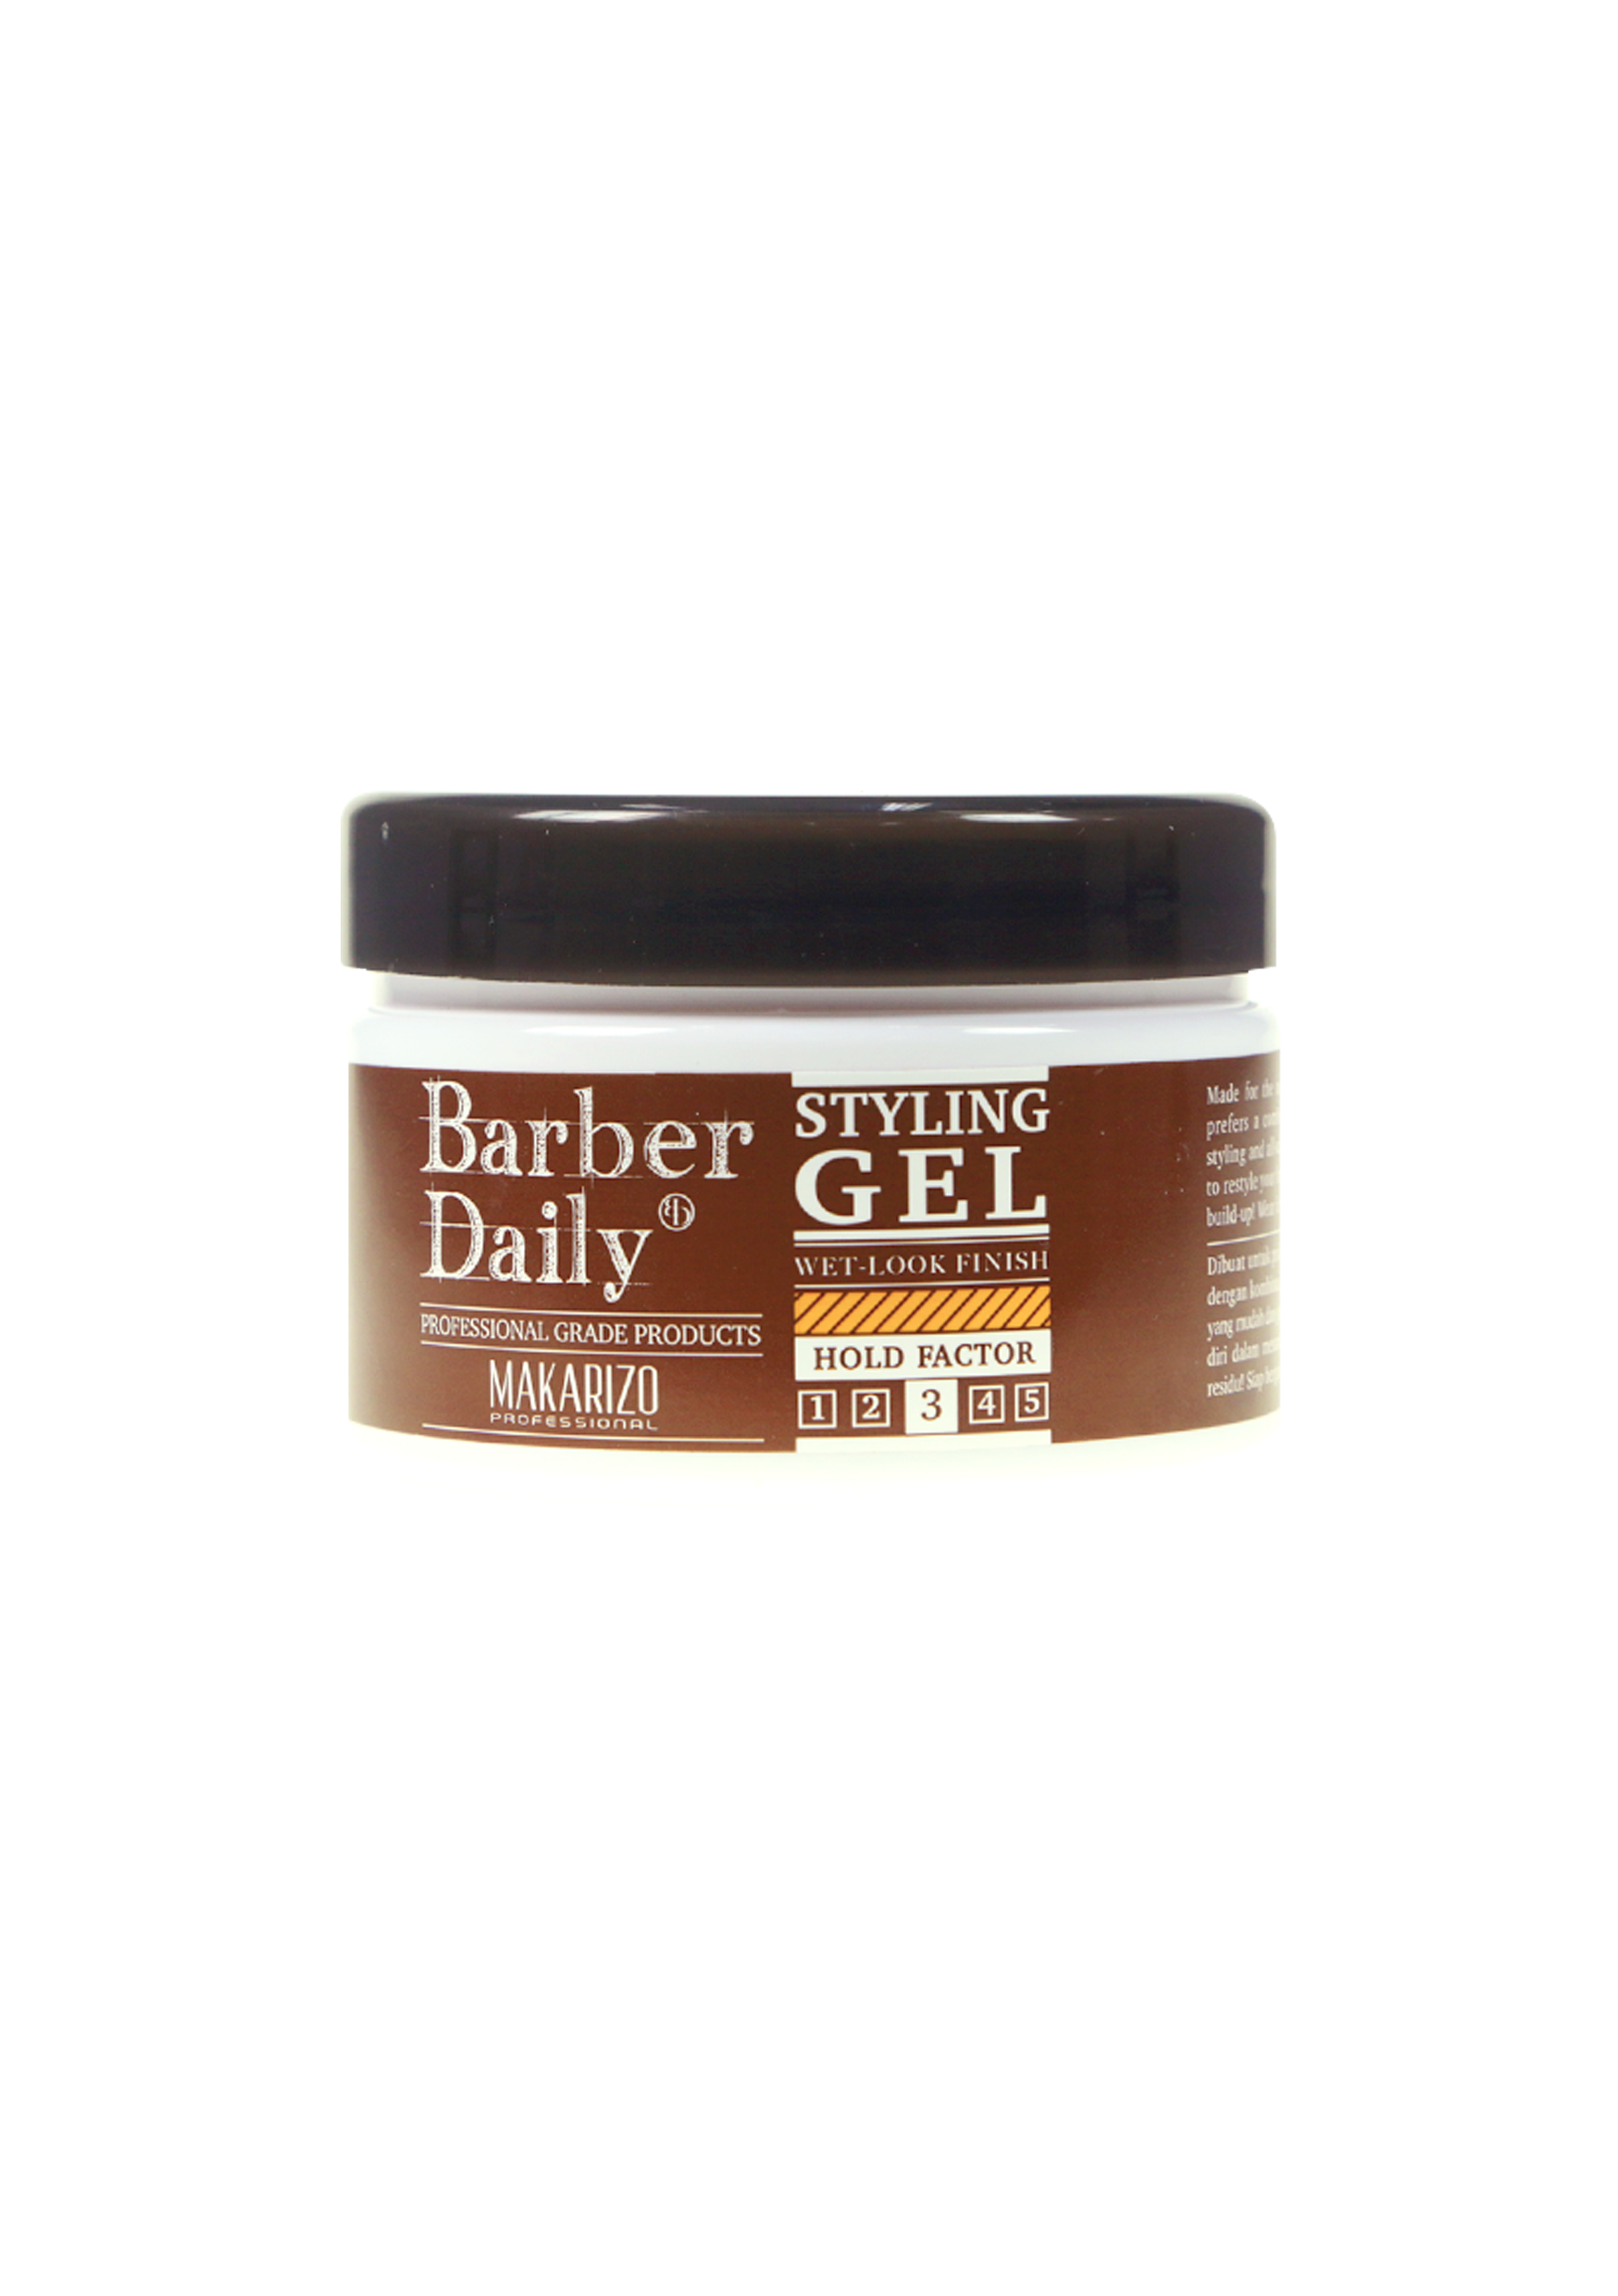 barber daily styling gel - update